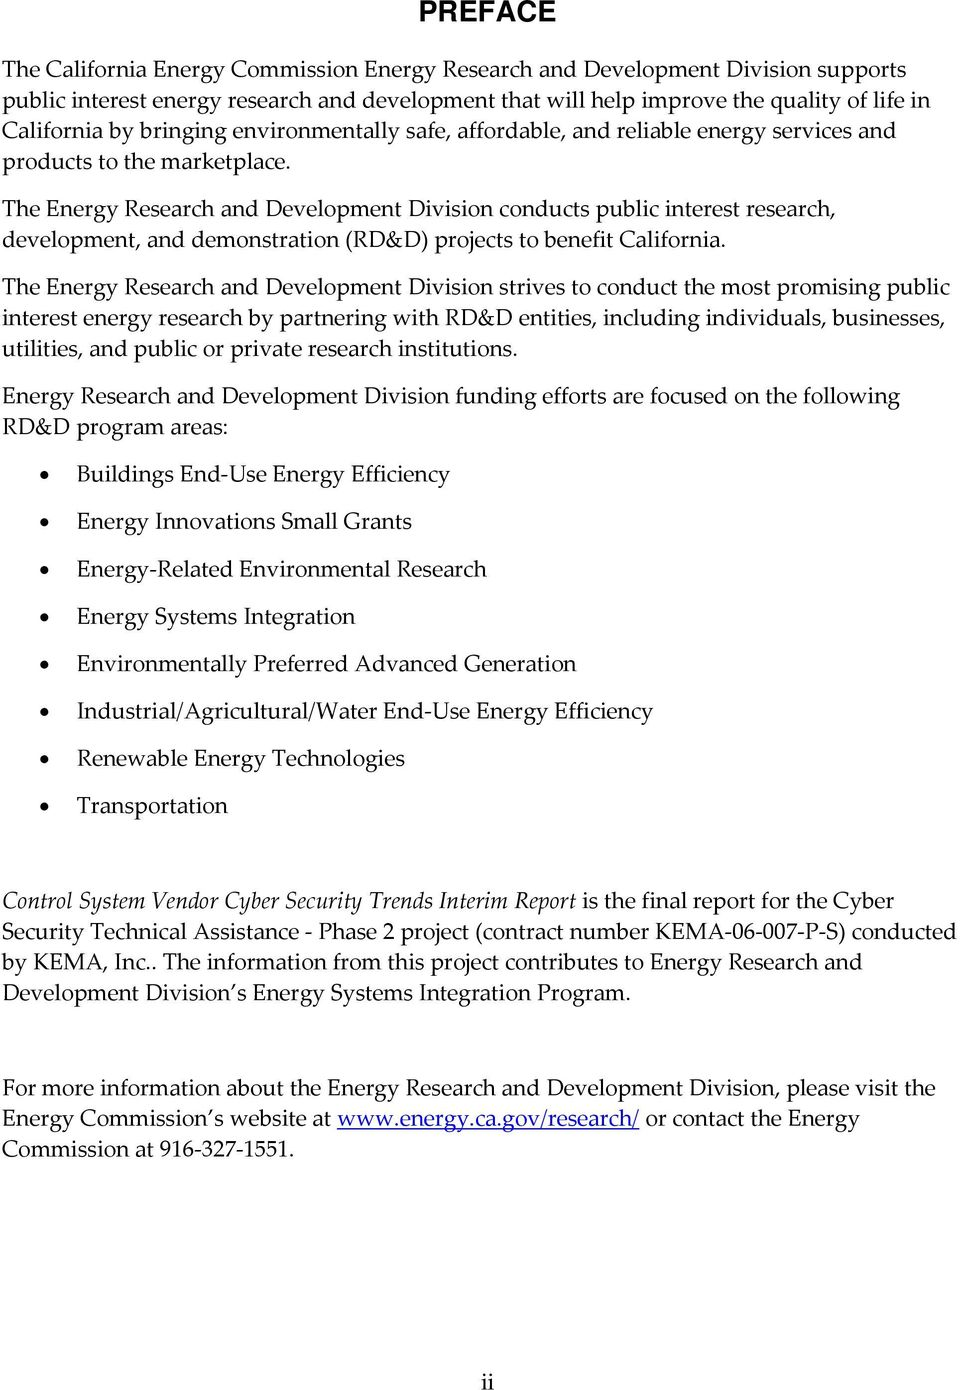 The Energy Research and Development Division conducts public interest research, development, and demonstration (RD&D) projects to benefit California.